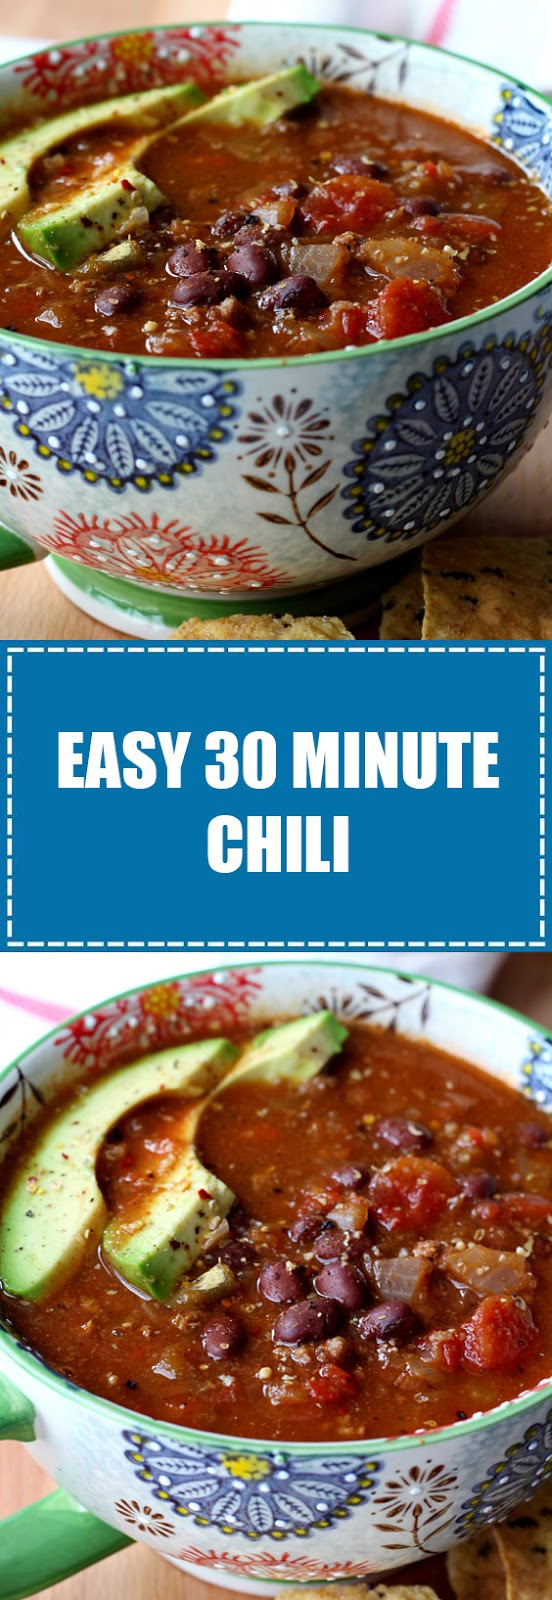 Easy 30 Minute Chili